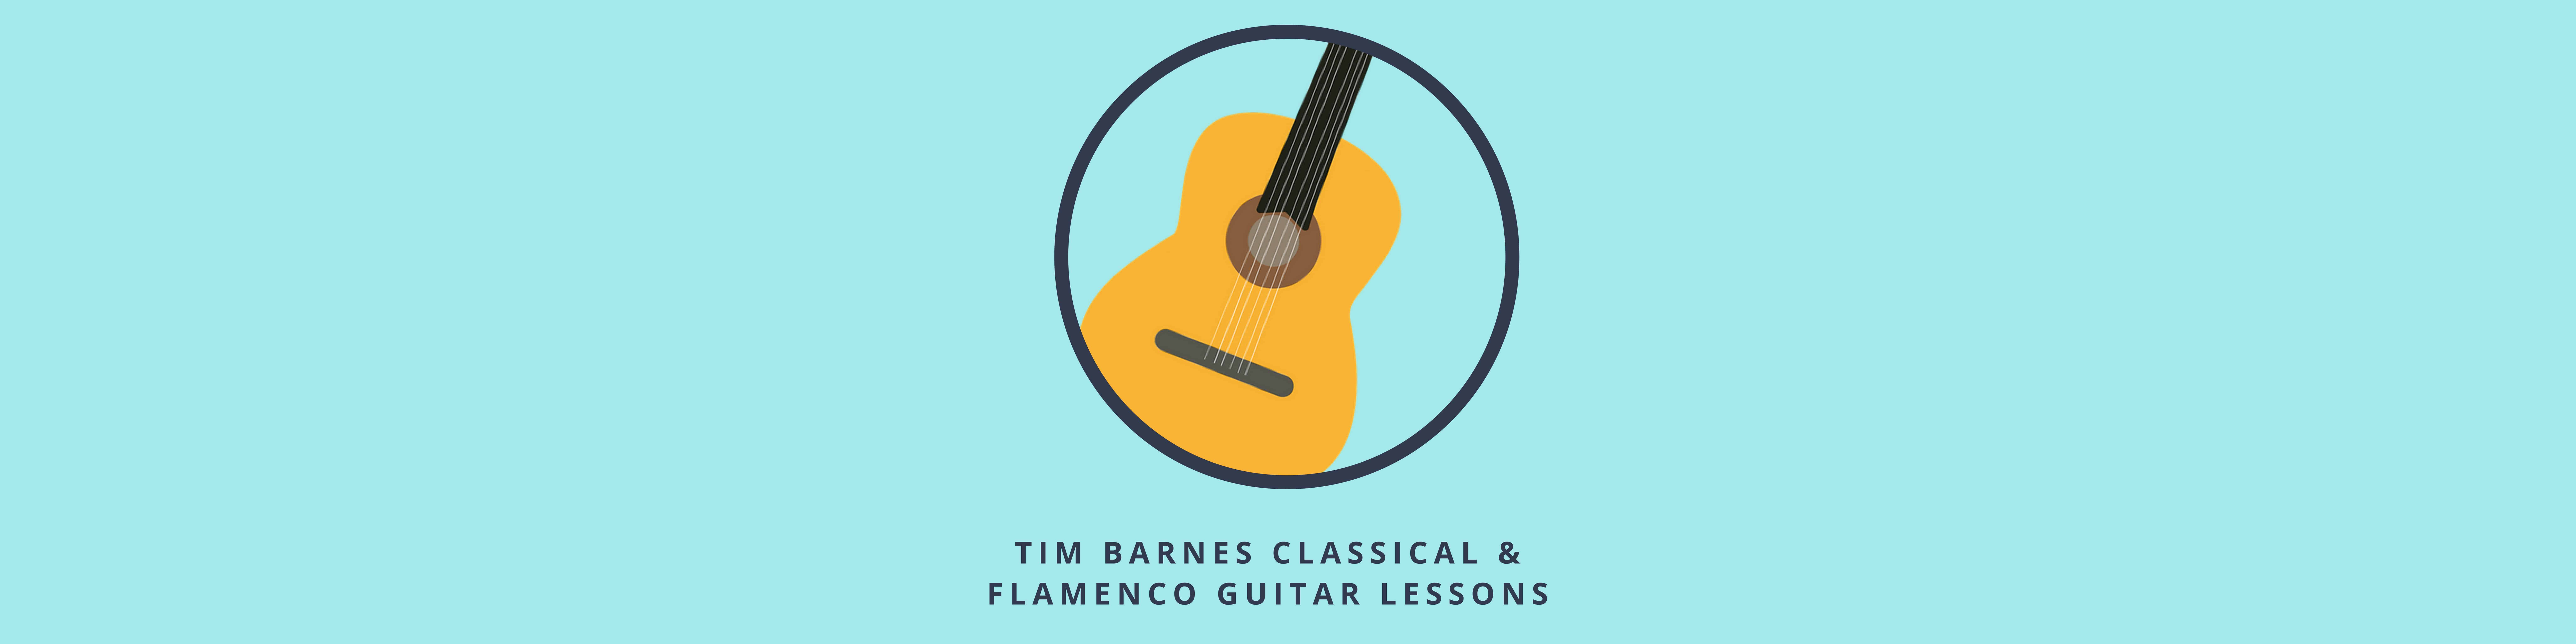 timbarnesguitarlessons.com